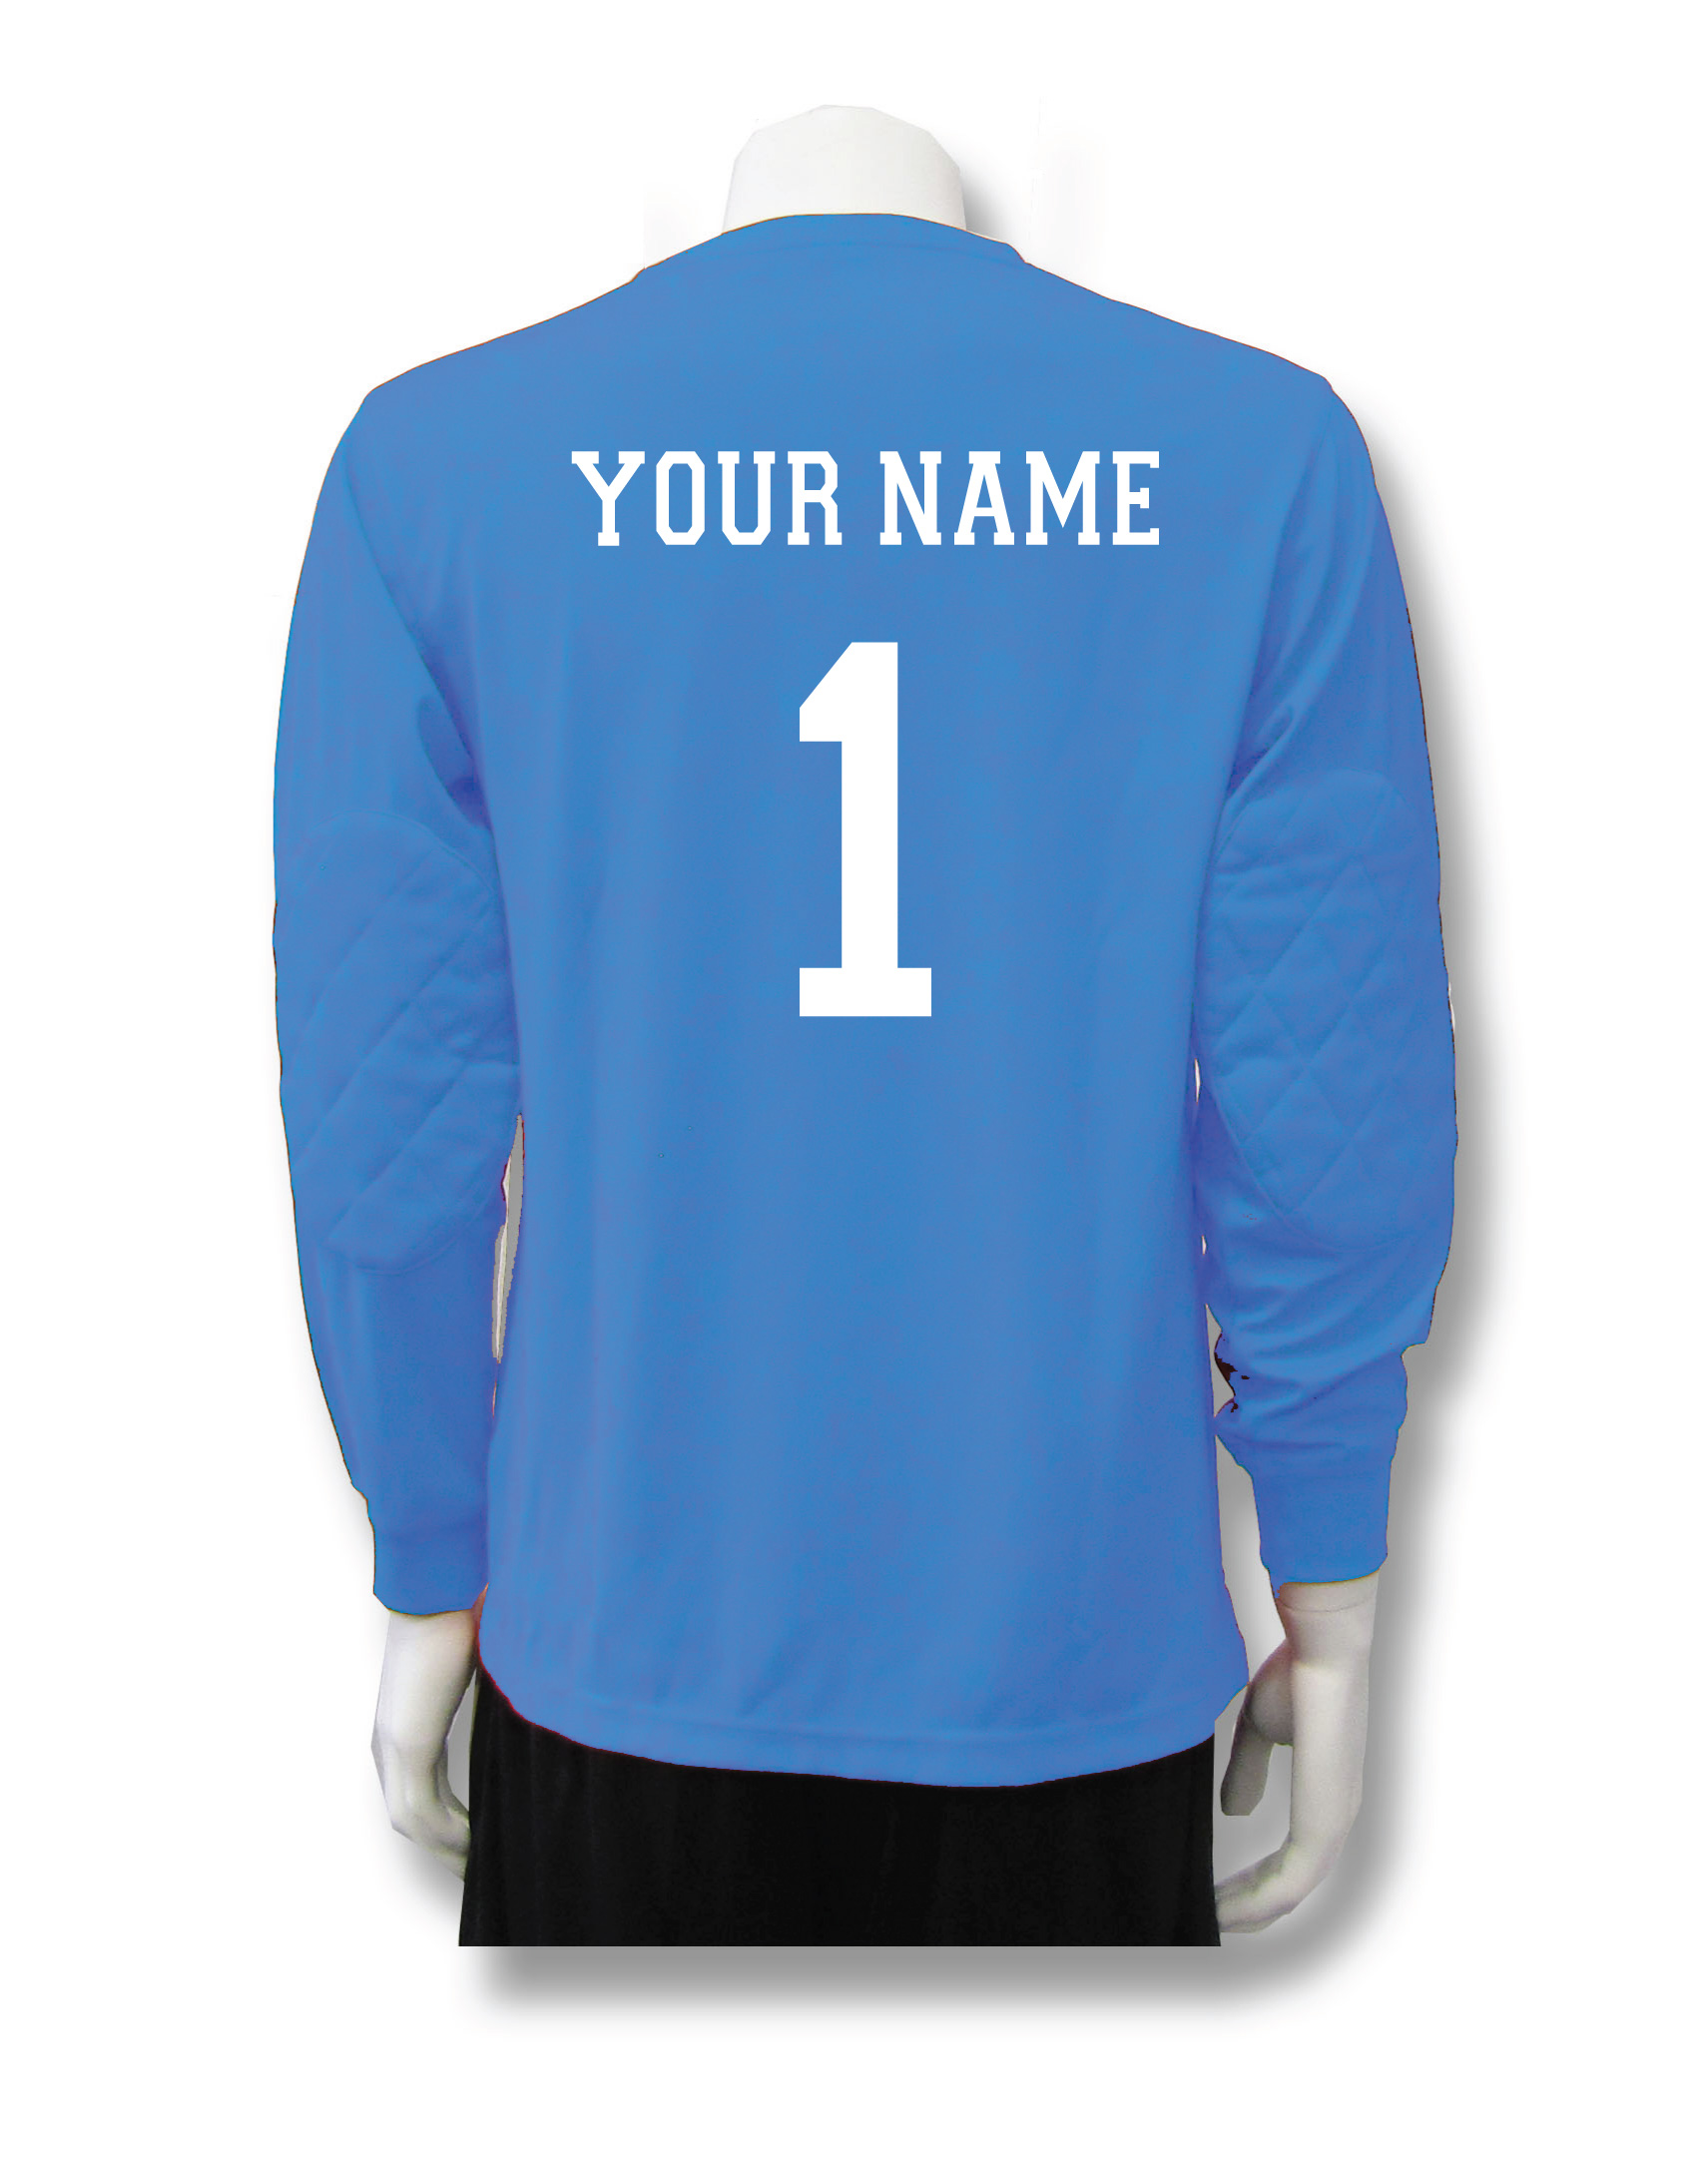 Long sleeve Columbia Blue soccer keeper jersey with name and number by Code Four Athletics